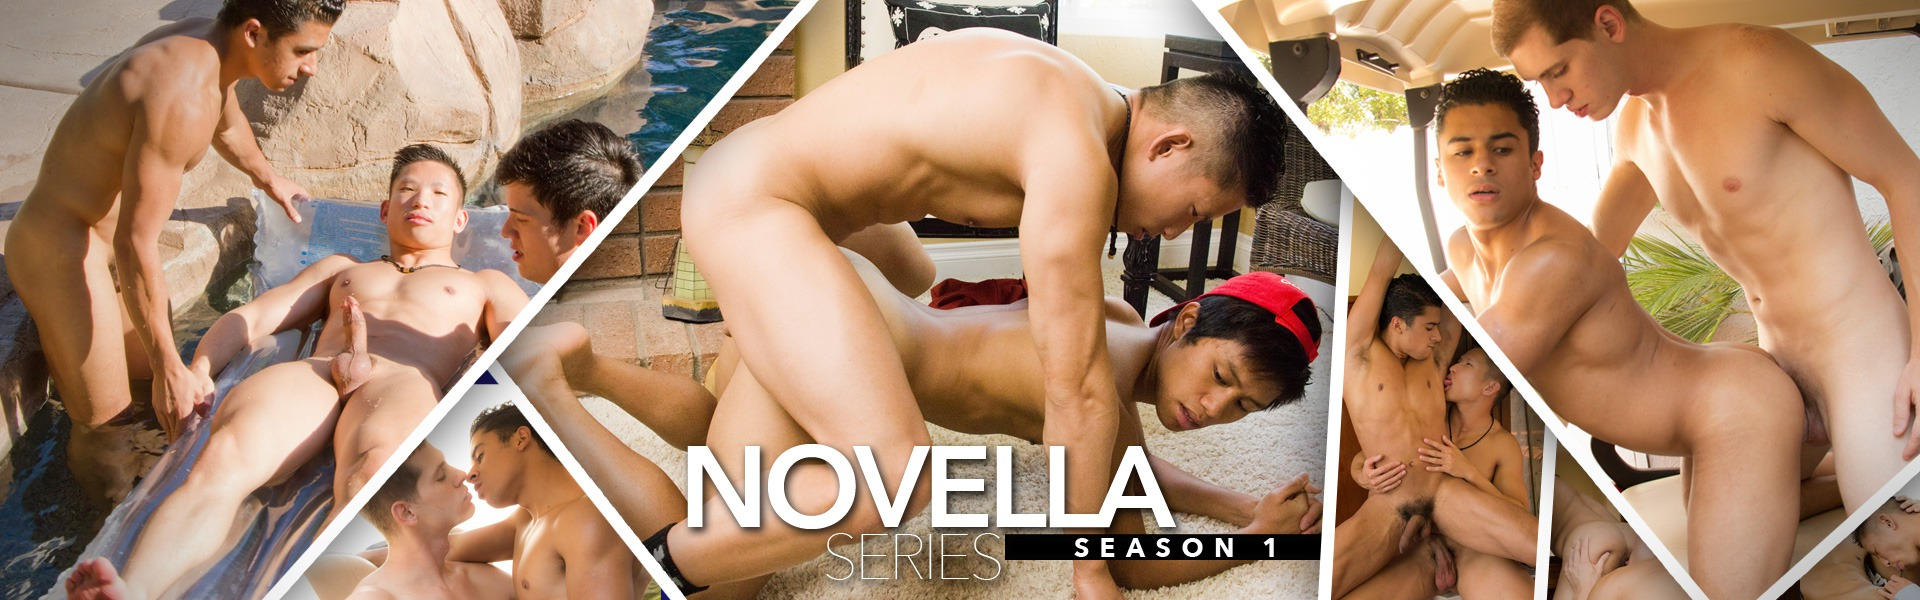 Peter Fever - Novella Season 1